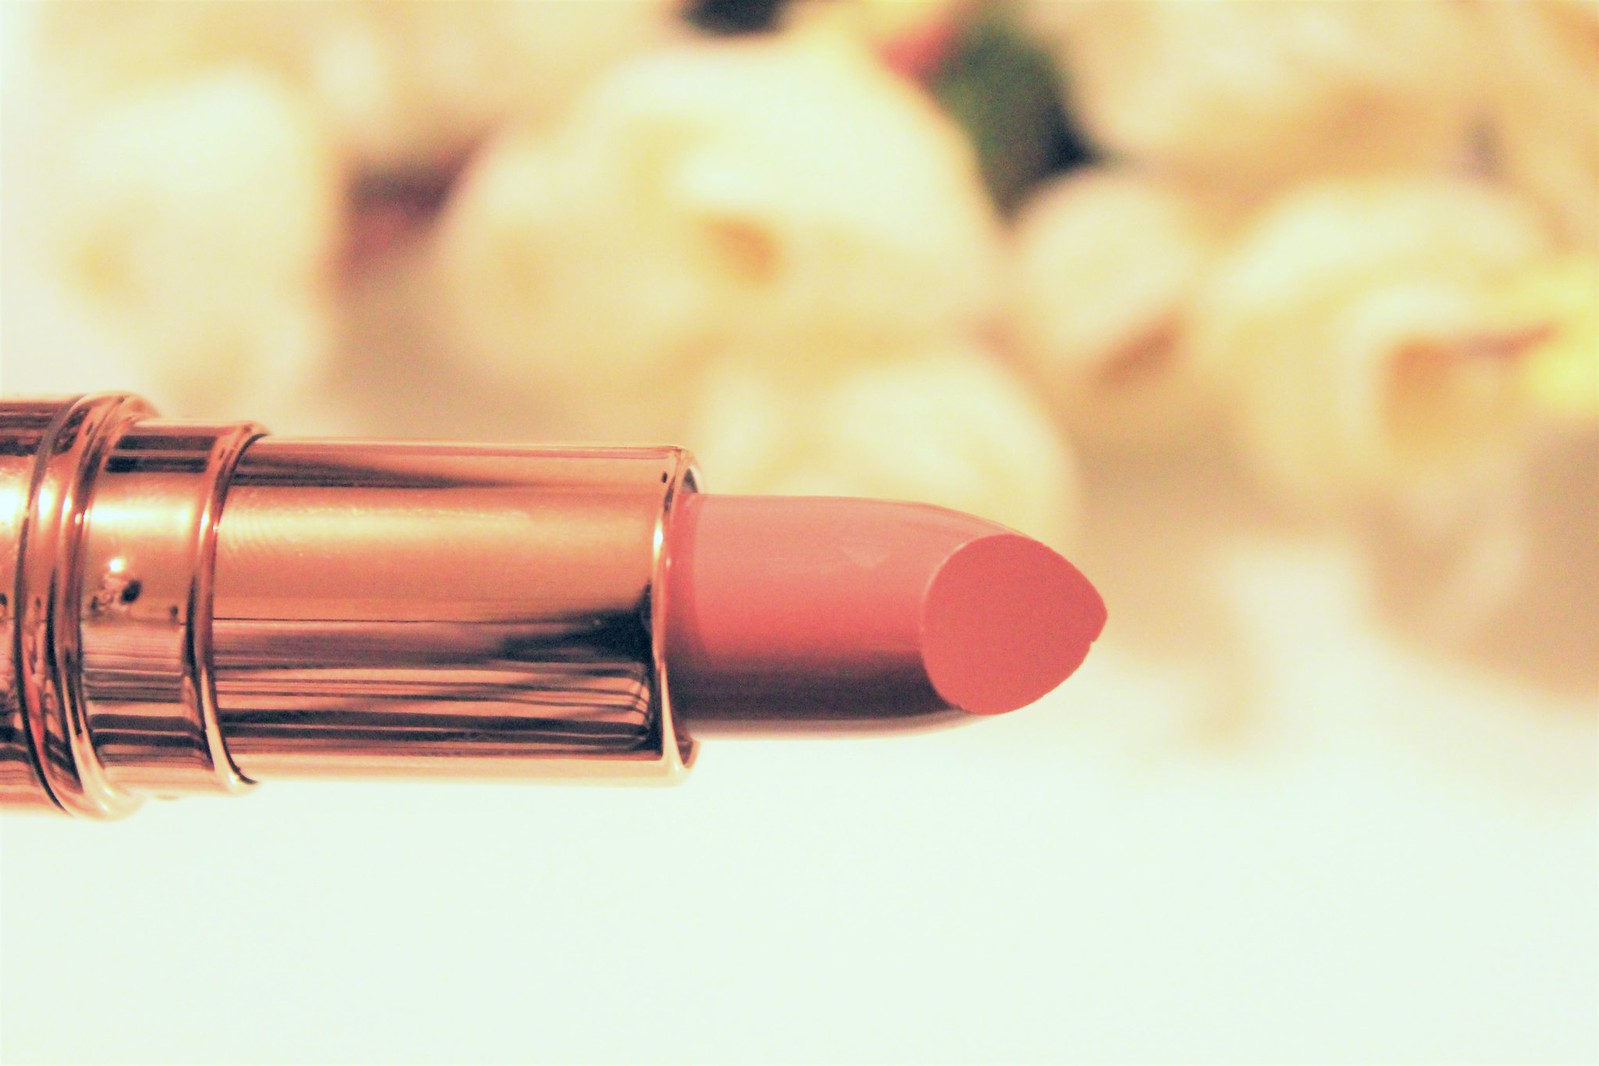 Make Up Revolution Lipstick Chauffeur